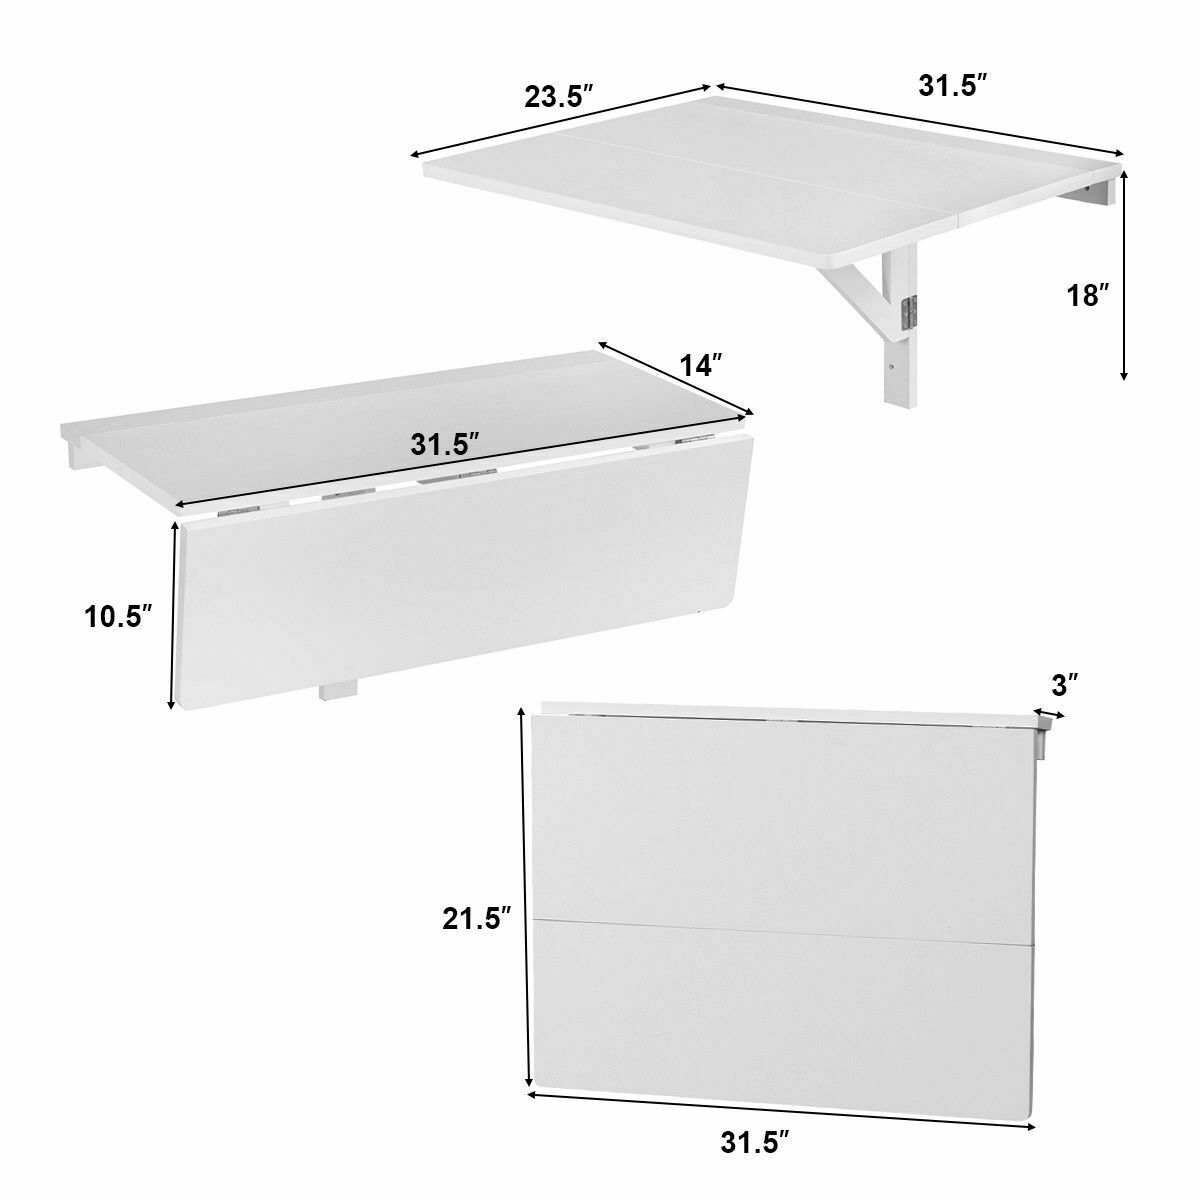 Wall-Mounted Drop-Leaf Table Folding Kitchen Dining Table Desk Space Saver  White